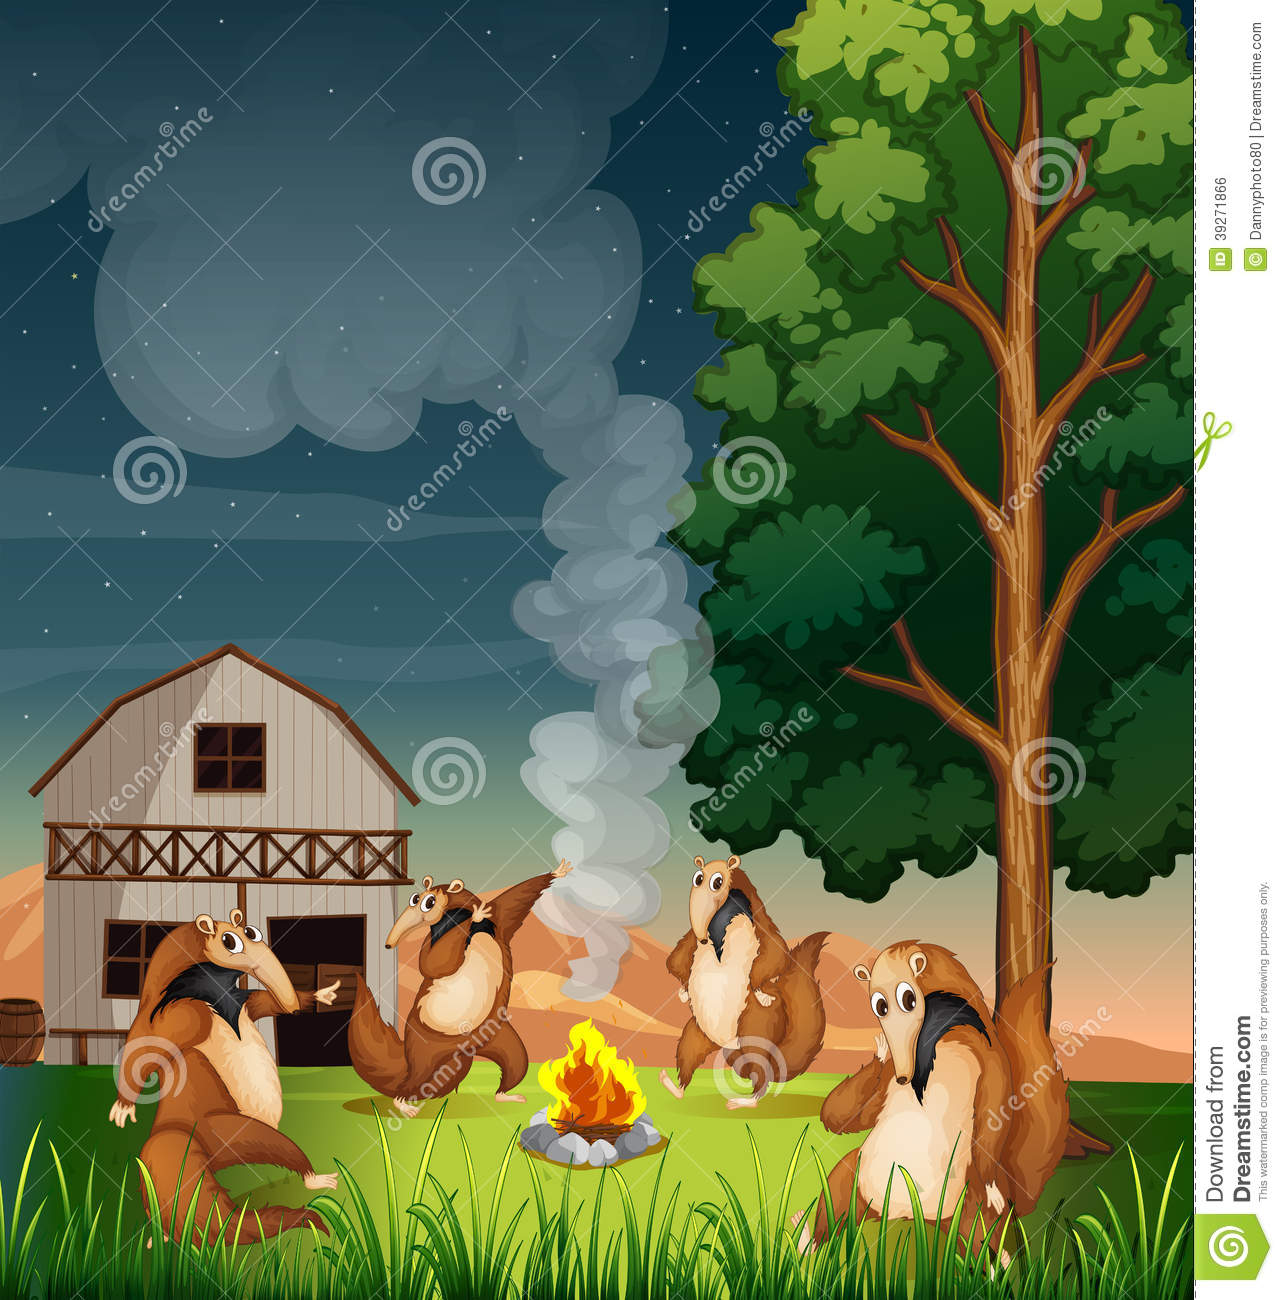 Playful Wild Animals Making A Campfire Stock Vector ...